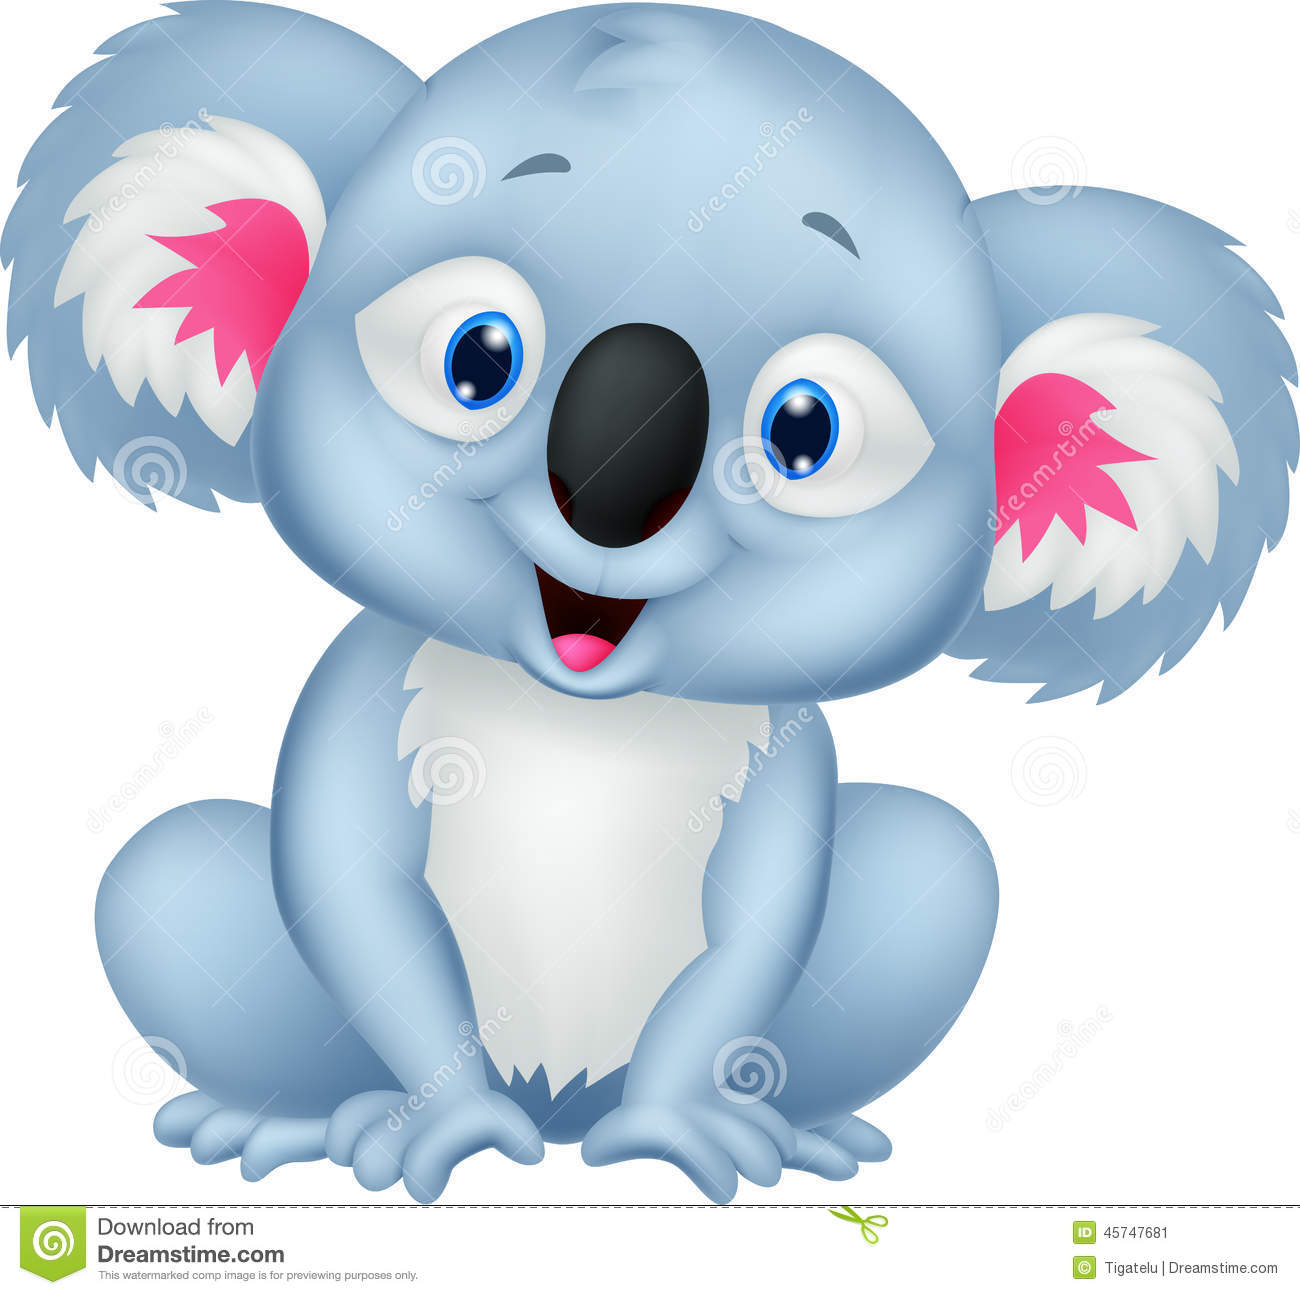 Cute Koala Cartoon Stock Vector - Image: 45747681